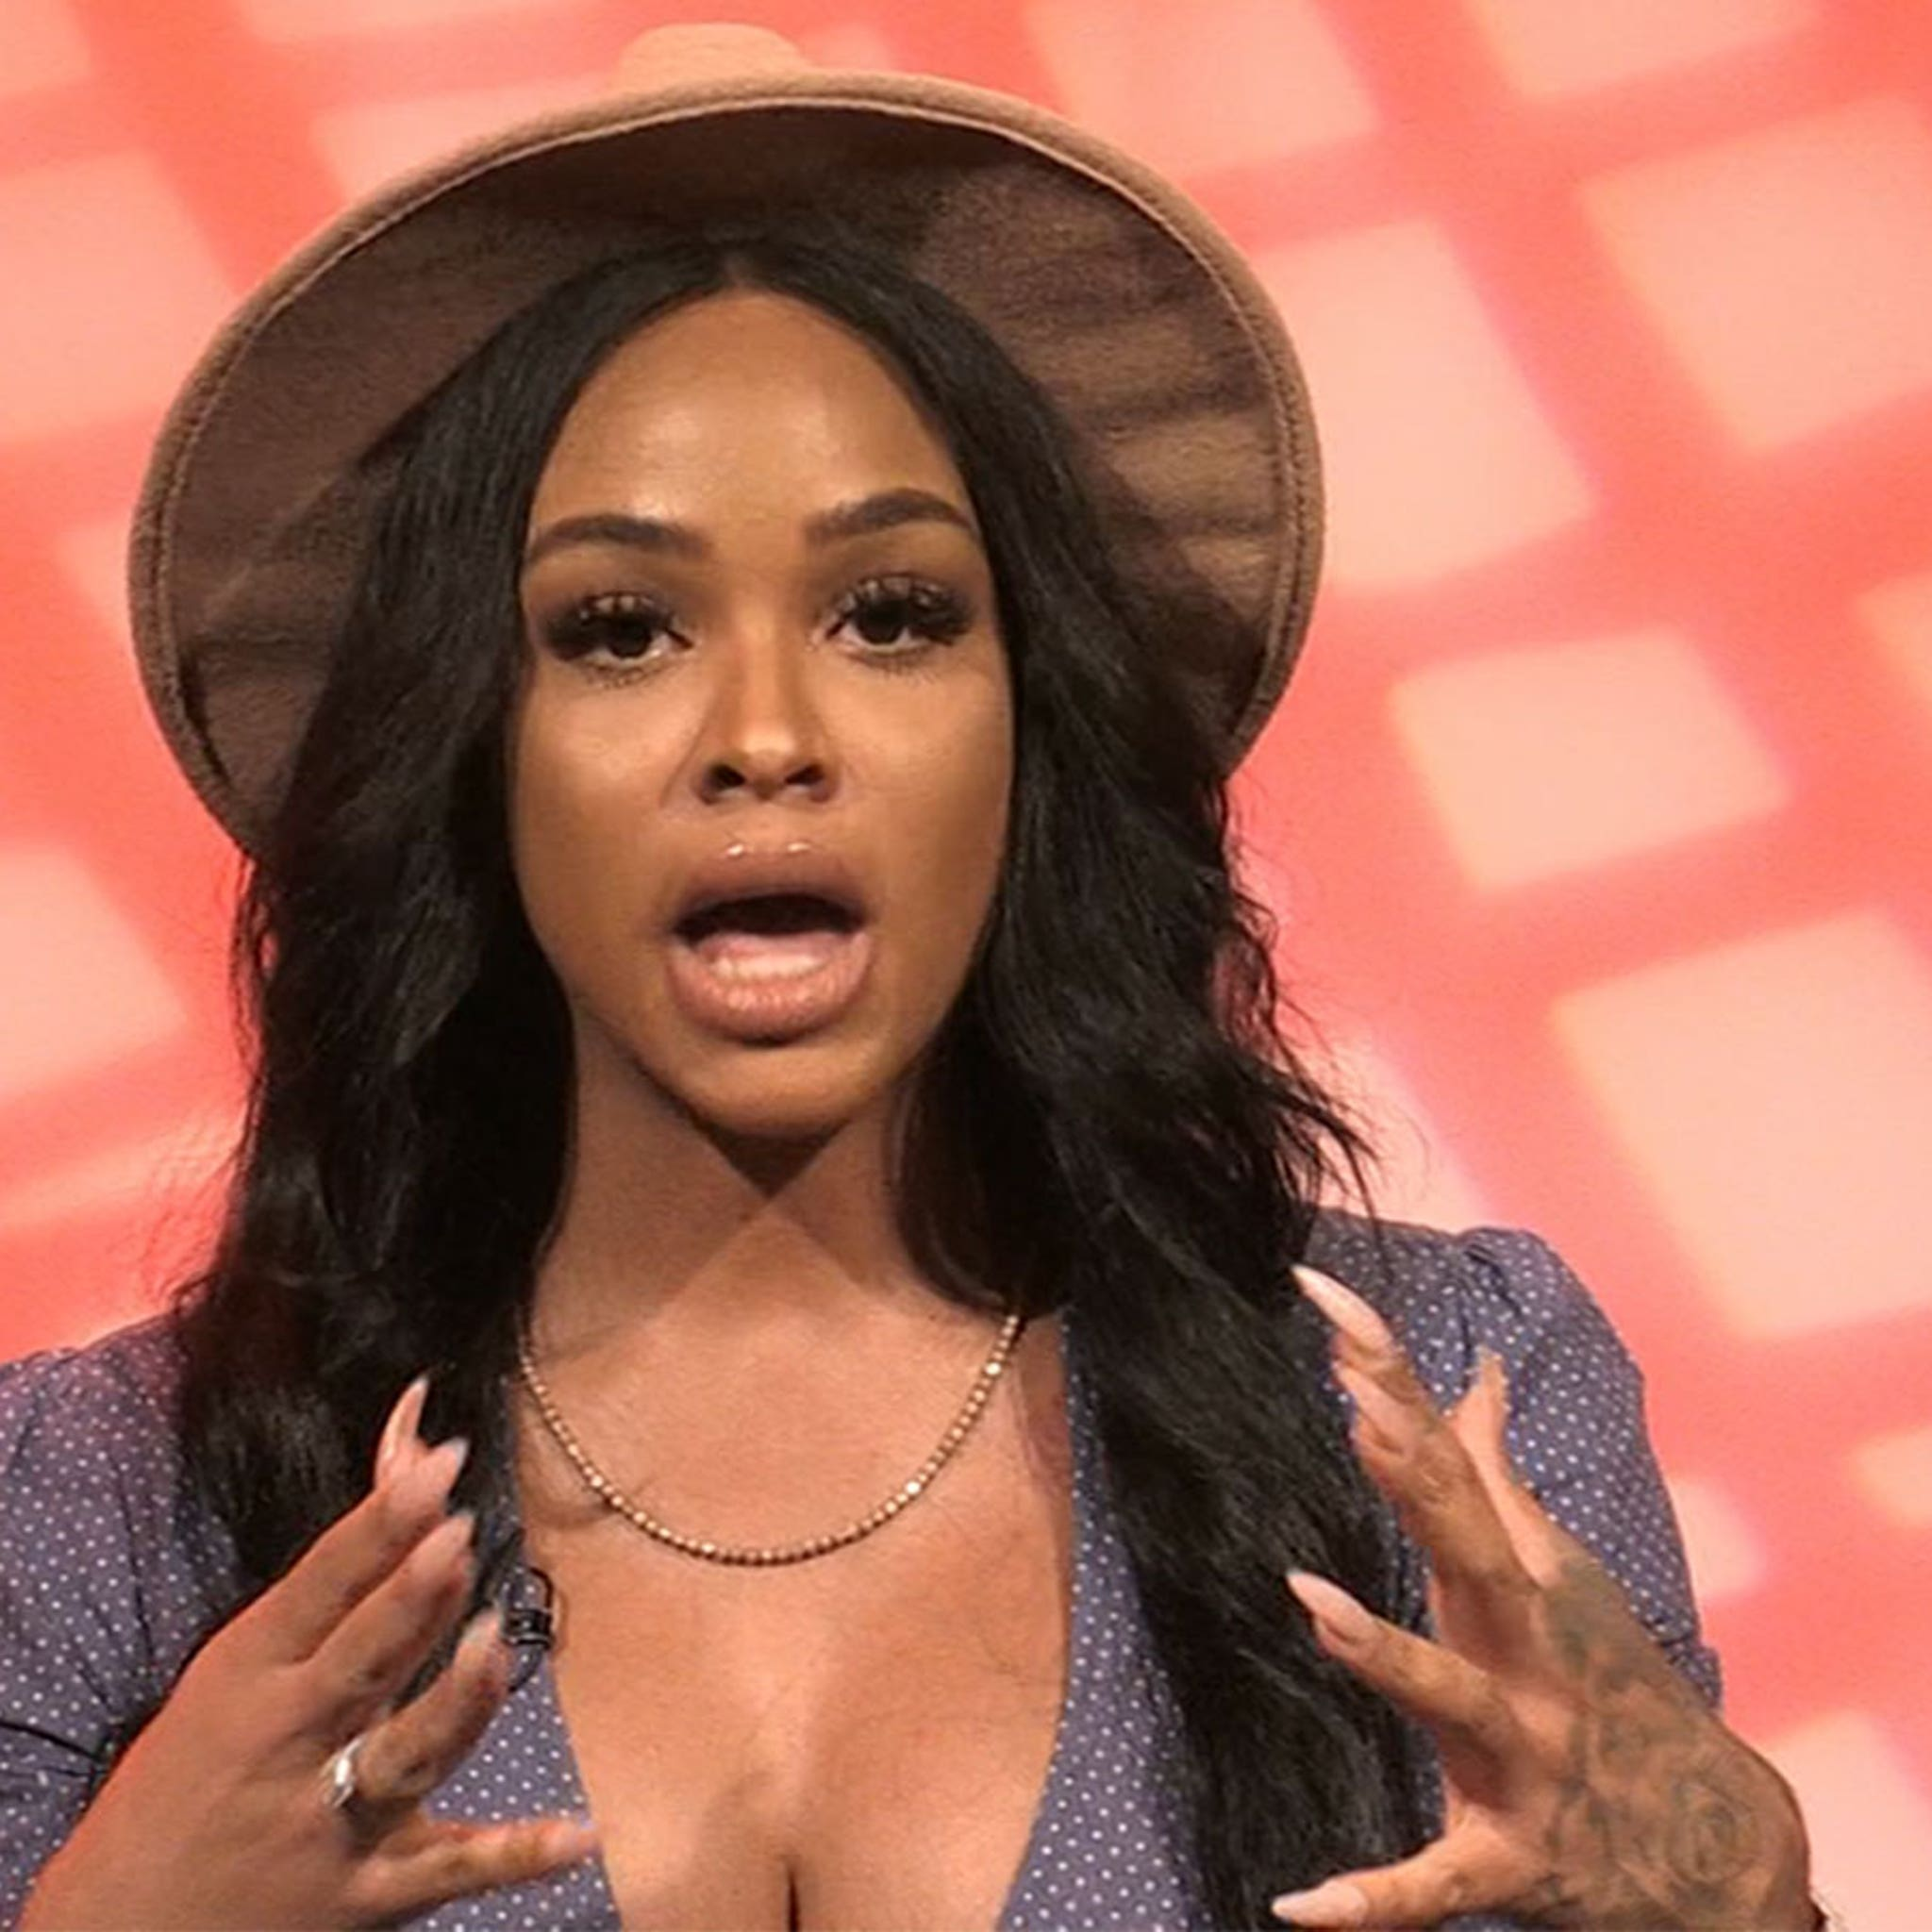 'L&HH' Star Masika Kalysha Wants No PDA in Kids' Movies, TV or in Person